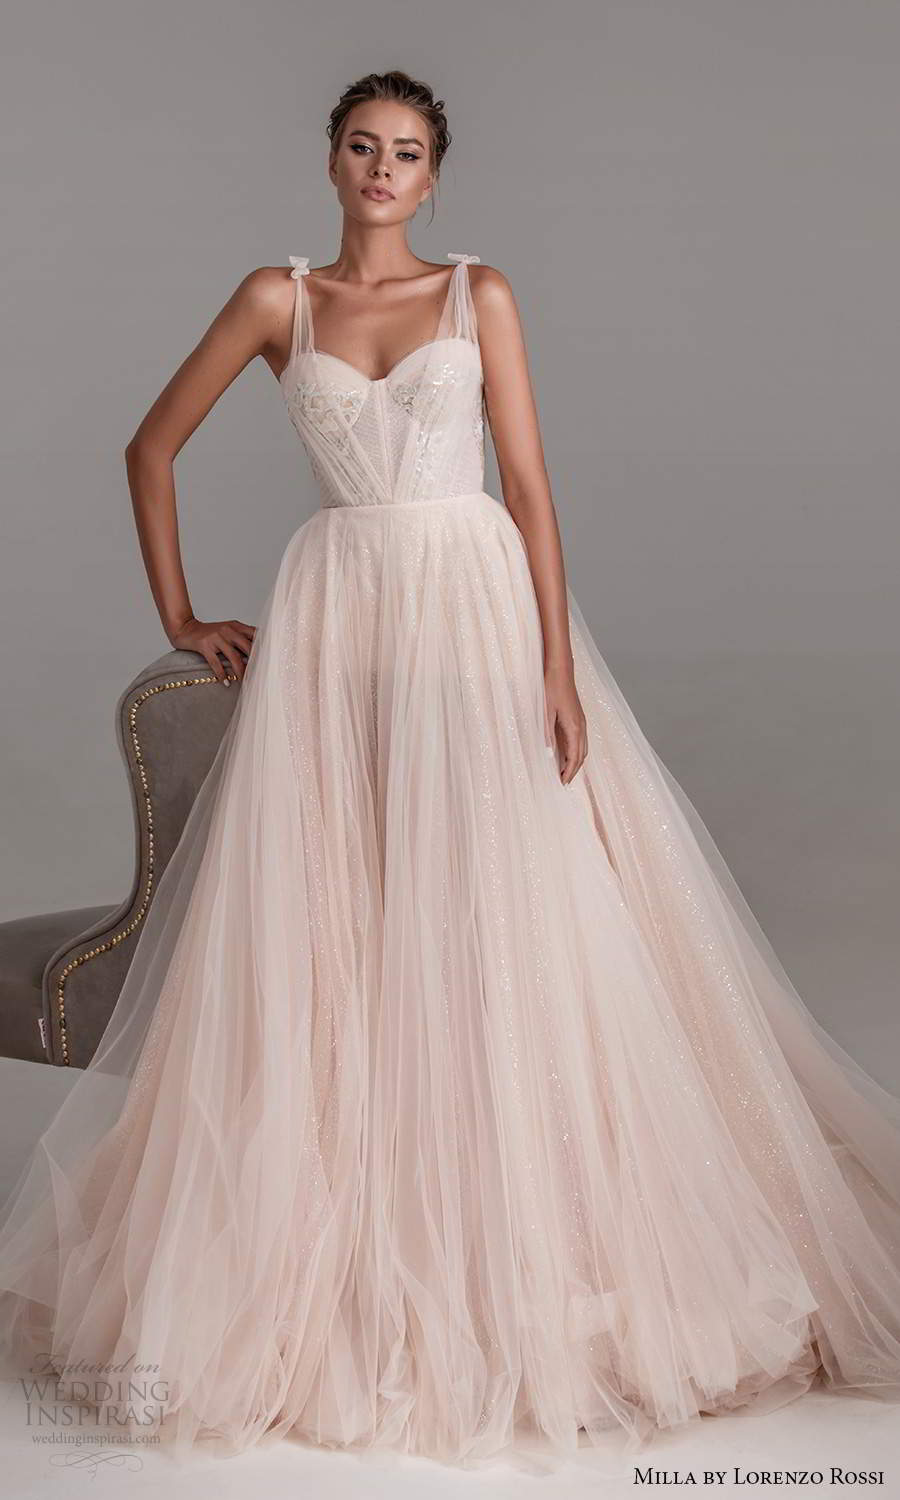 milla by lorenzo rossi 2020 rtw sleeveless ruched straps sweetheart corset bodice a line ball gown wedding dress chapel train (16) mv